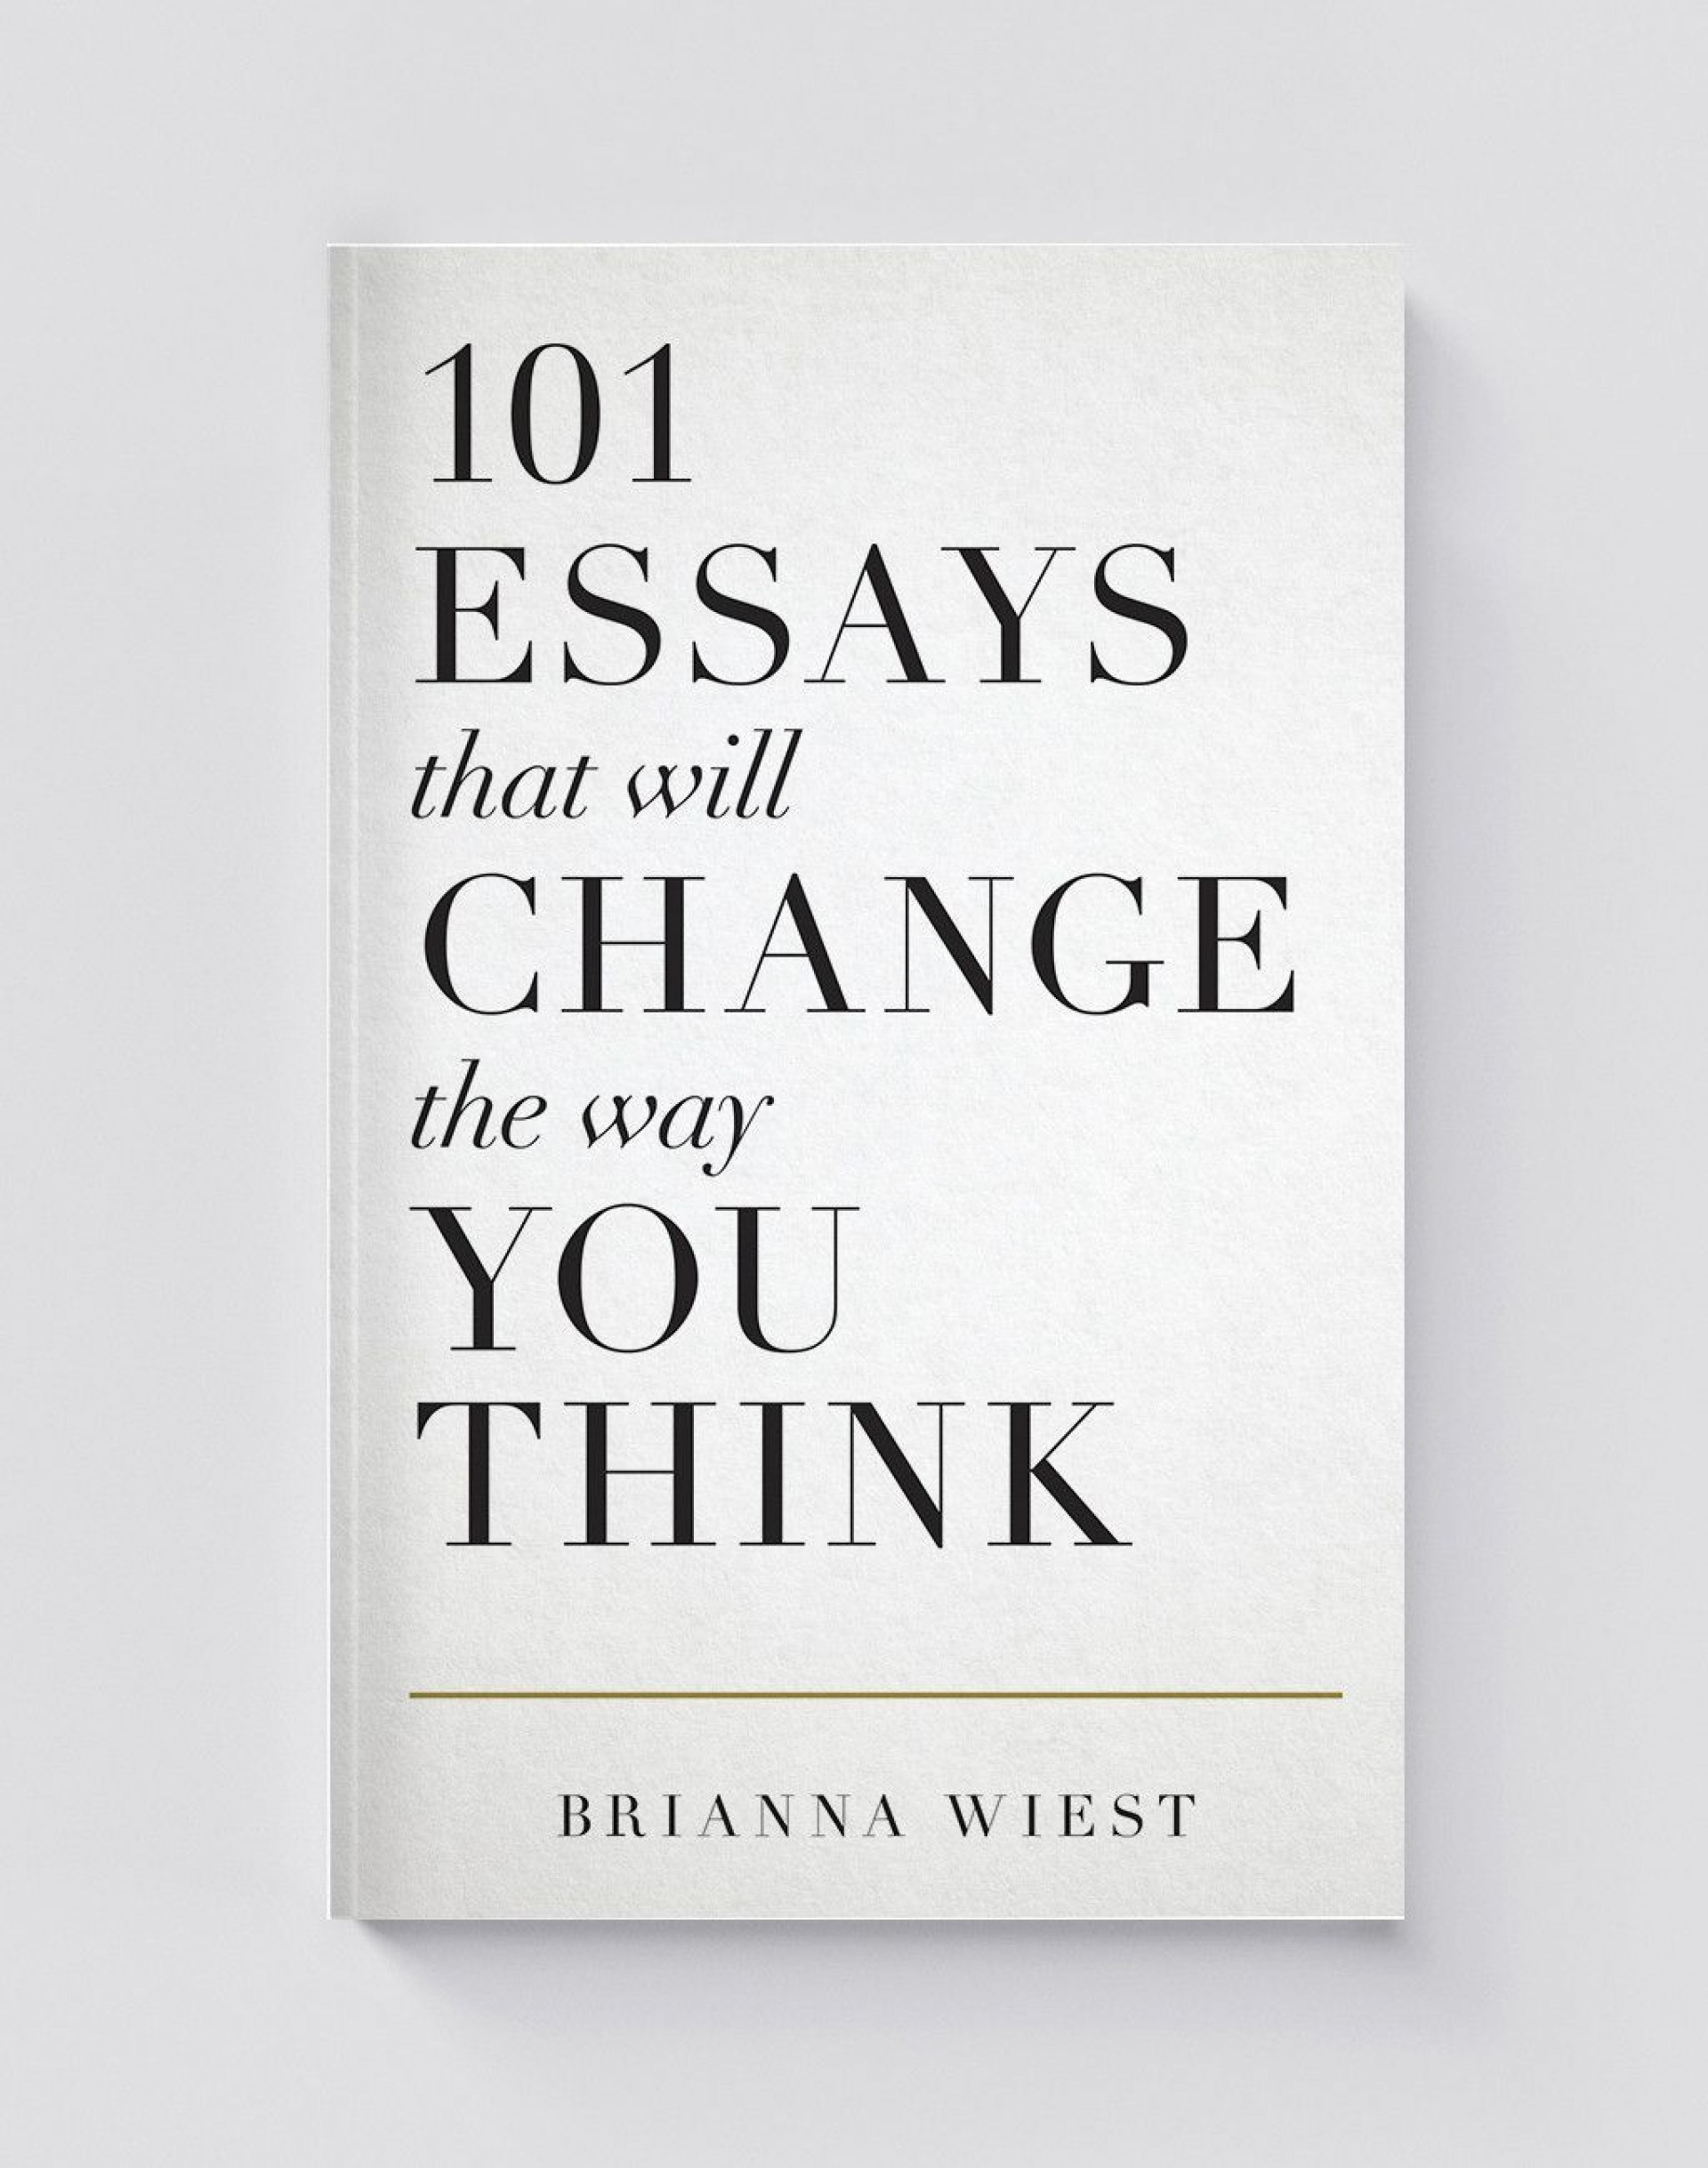 013 Essay Example Essays That Will Change The Way You Think Unusual 101 Book Depository Barnes And Noble Review 1920